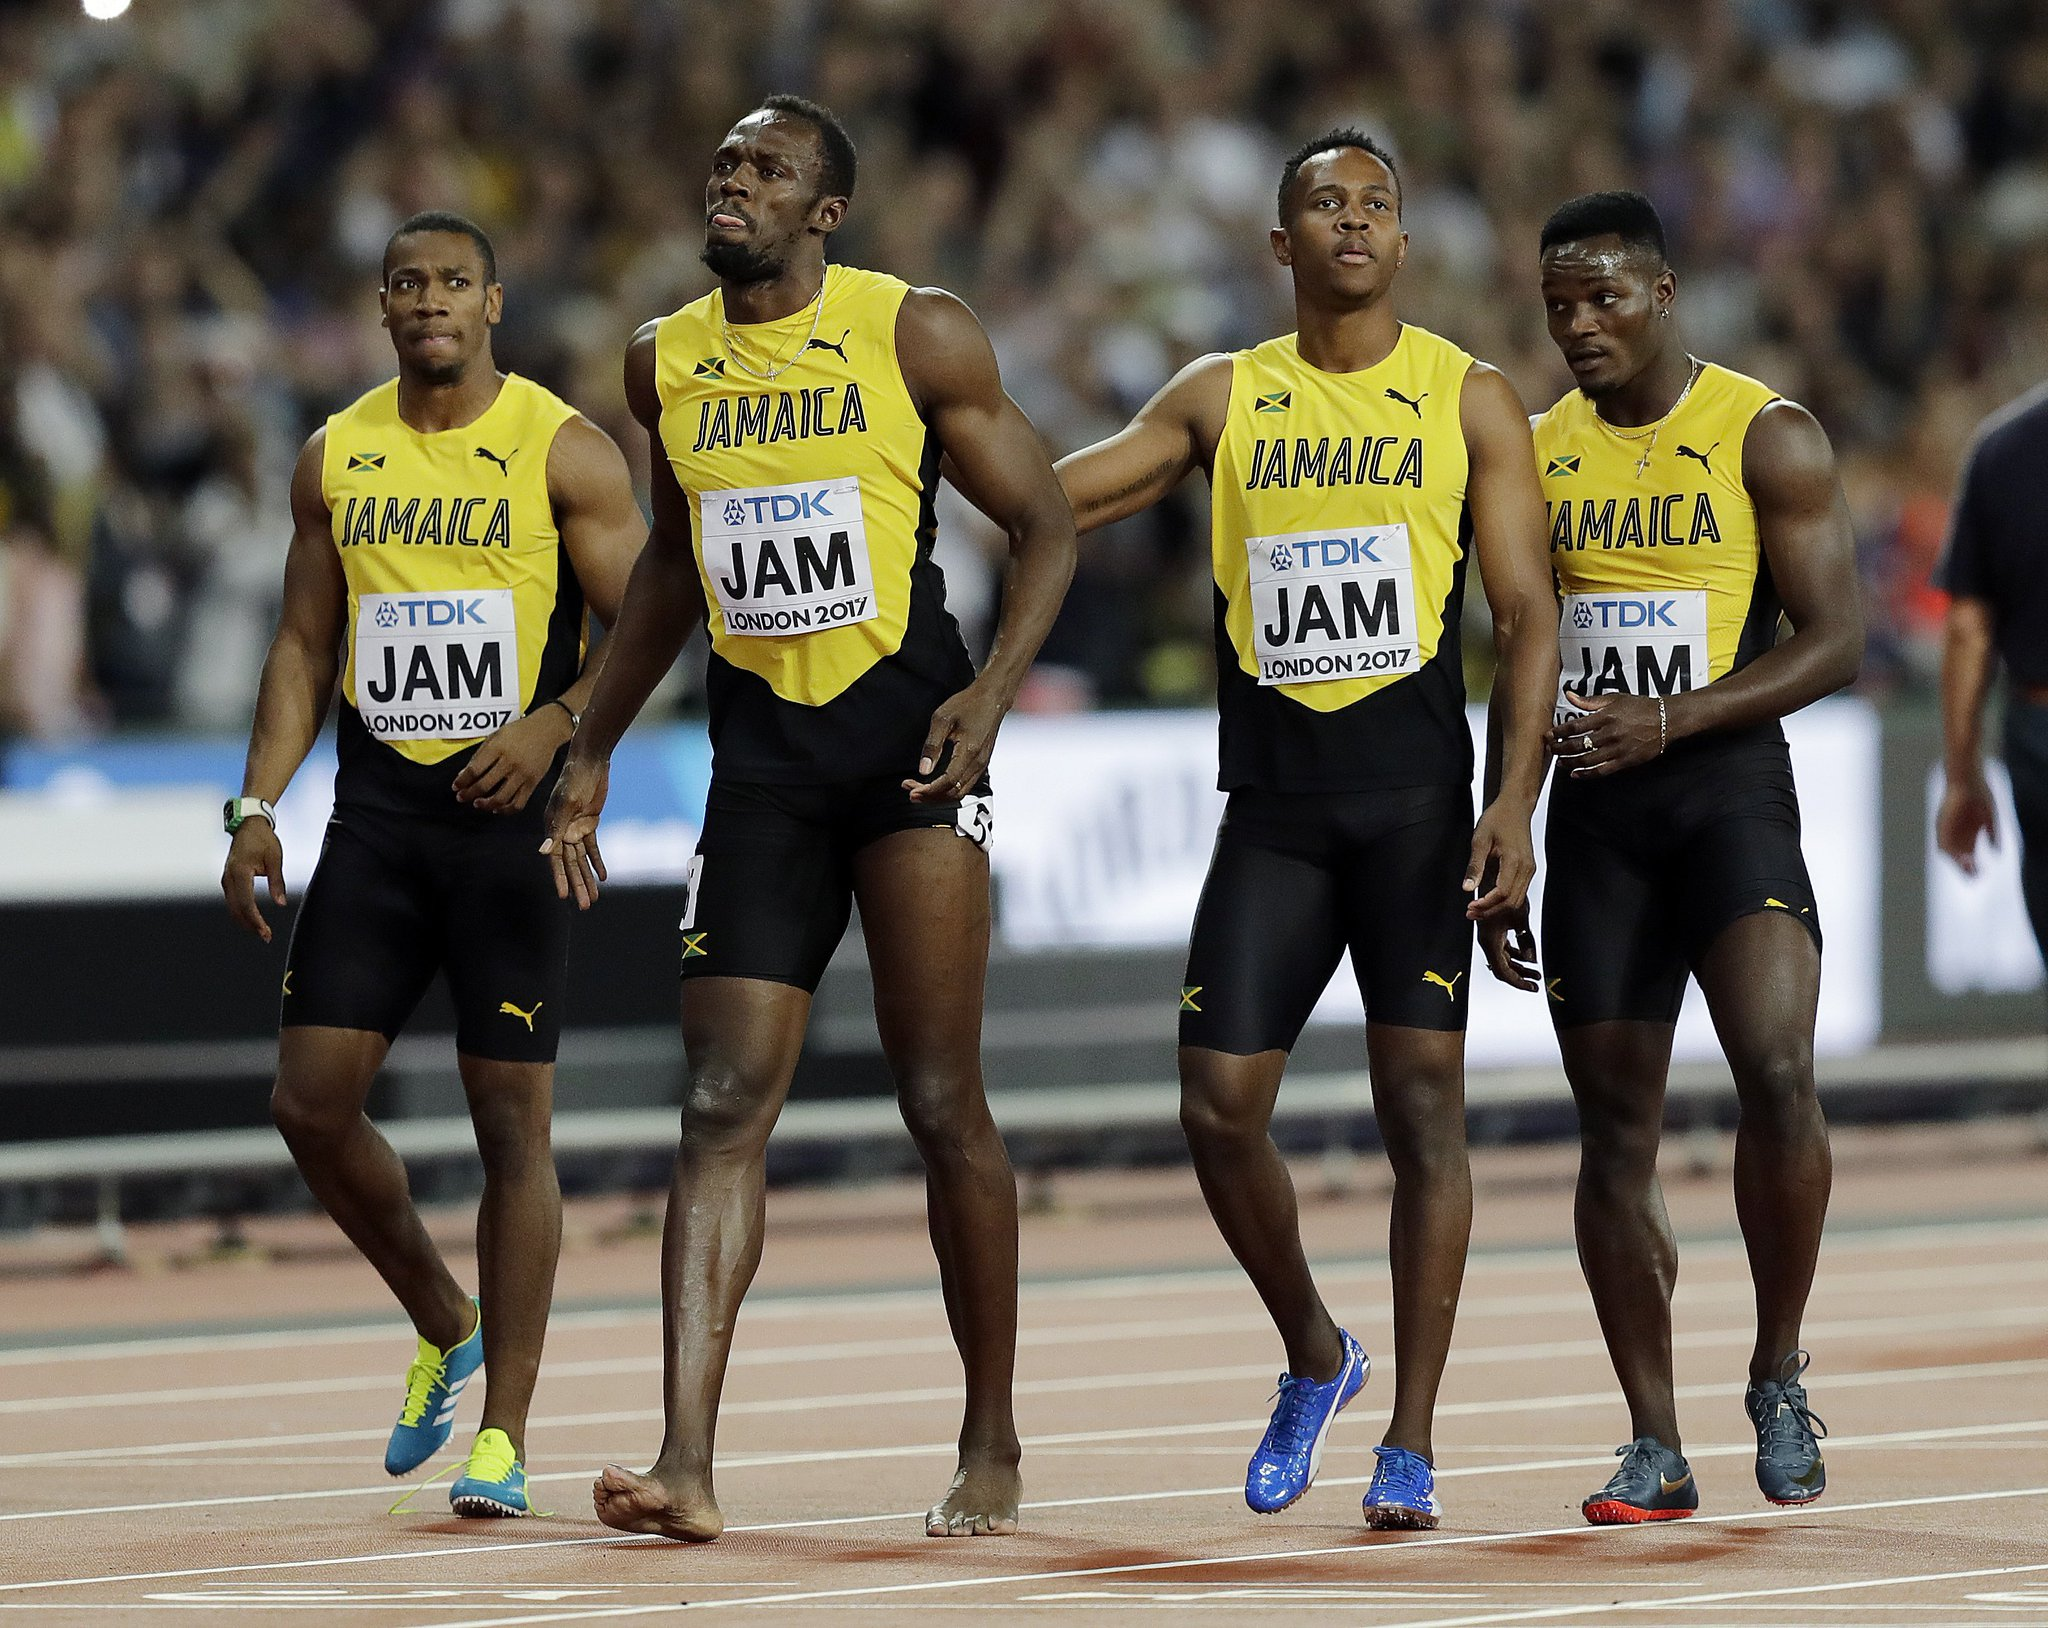 With Team Jamaica behind him, Usain Bolt crosses the finish line in the final race of his career. https://t.co/fvVMHRDW88